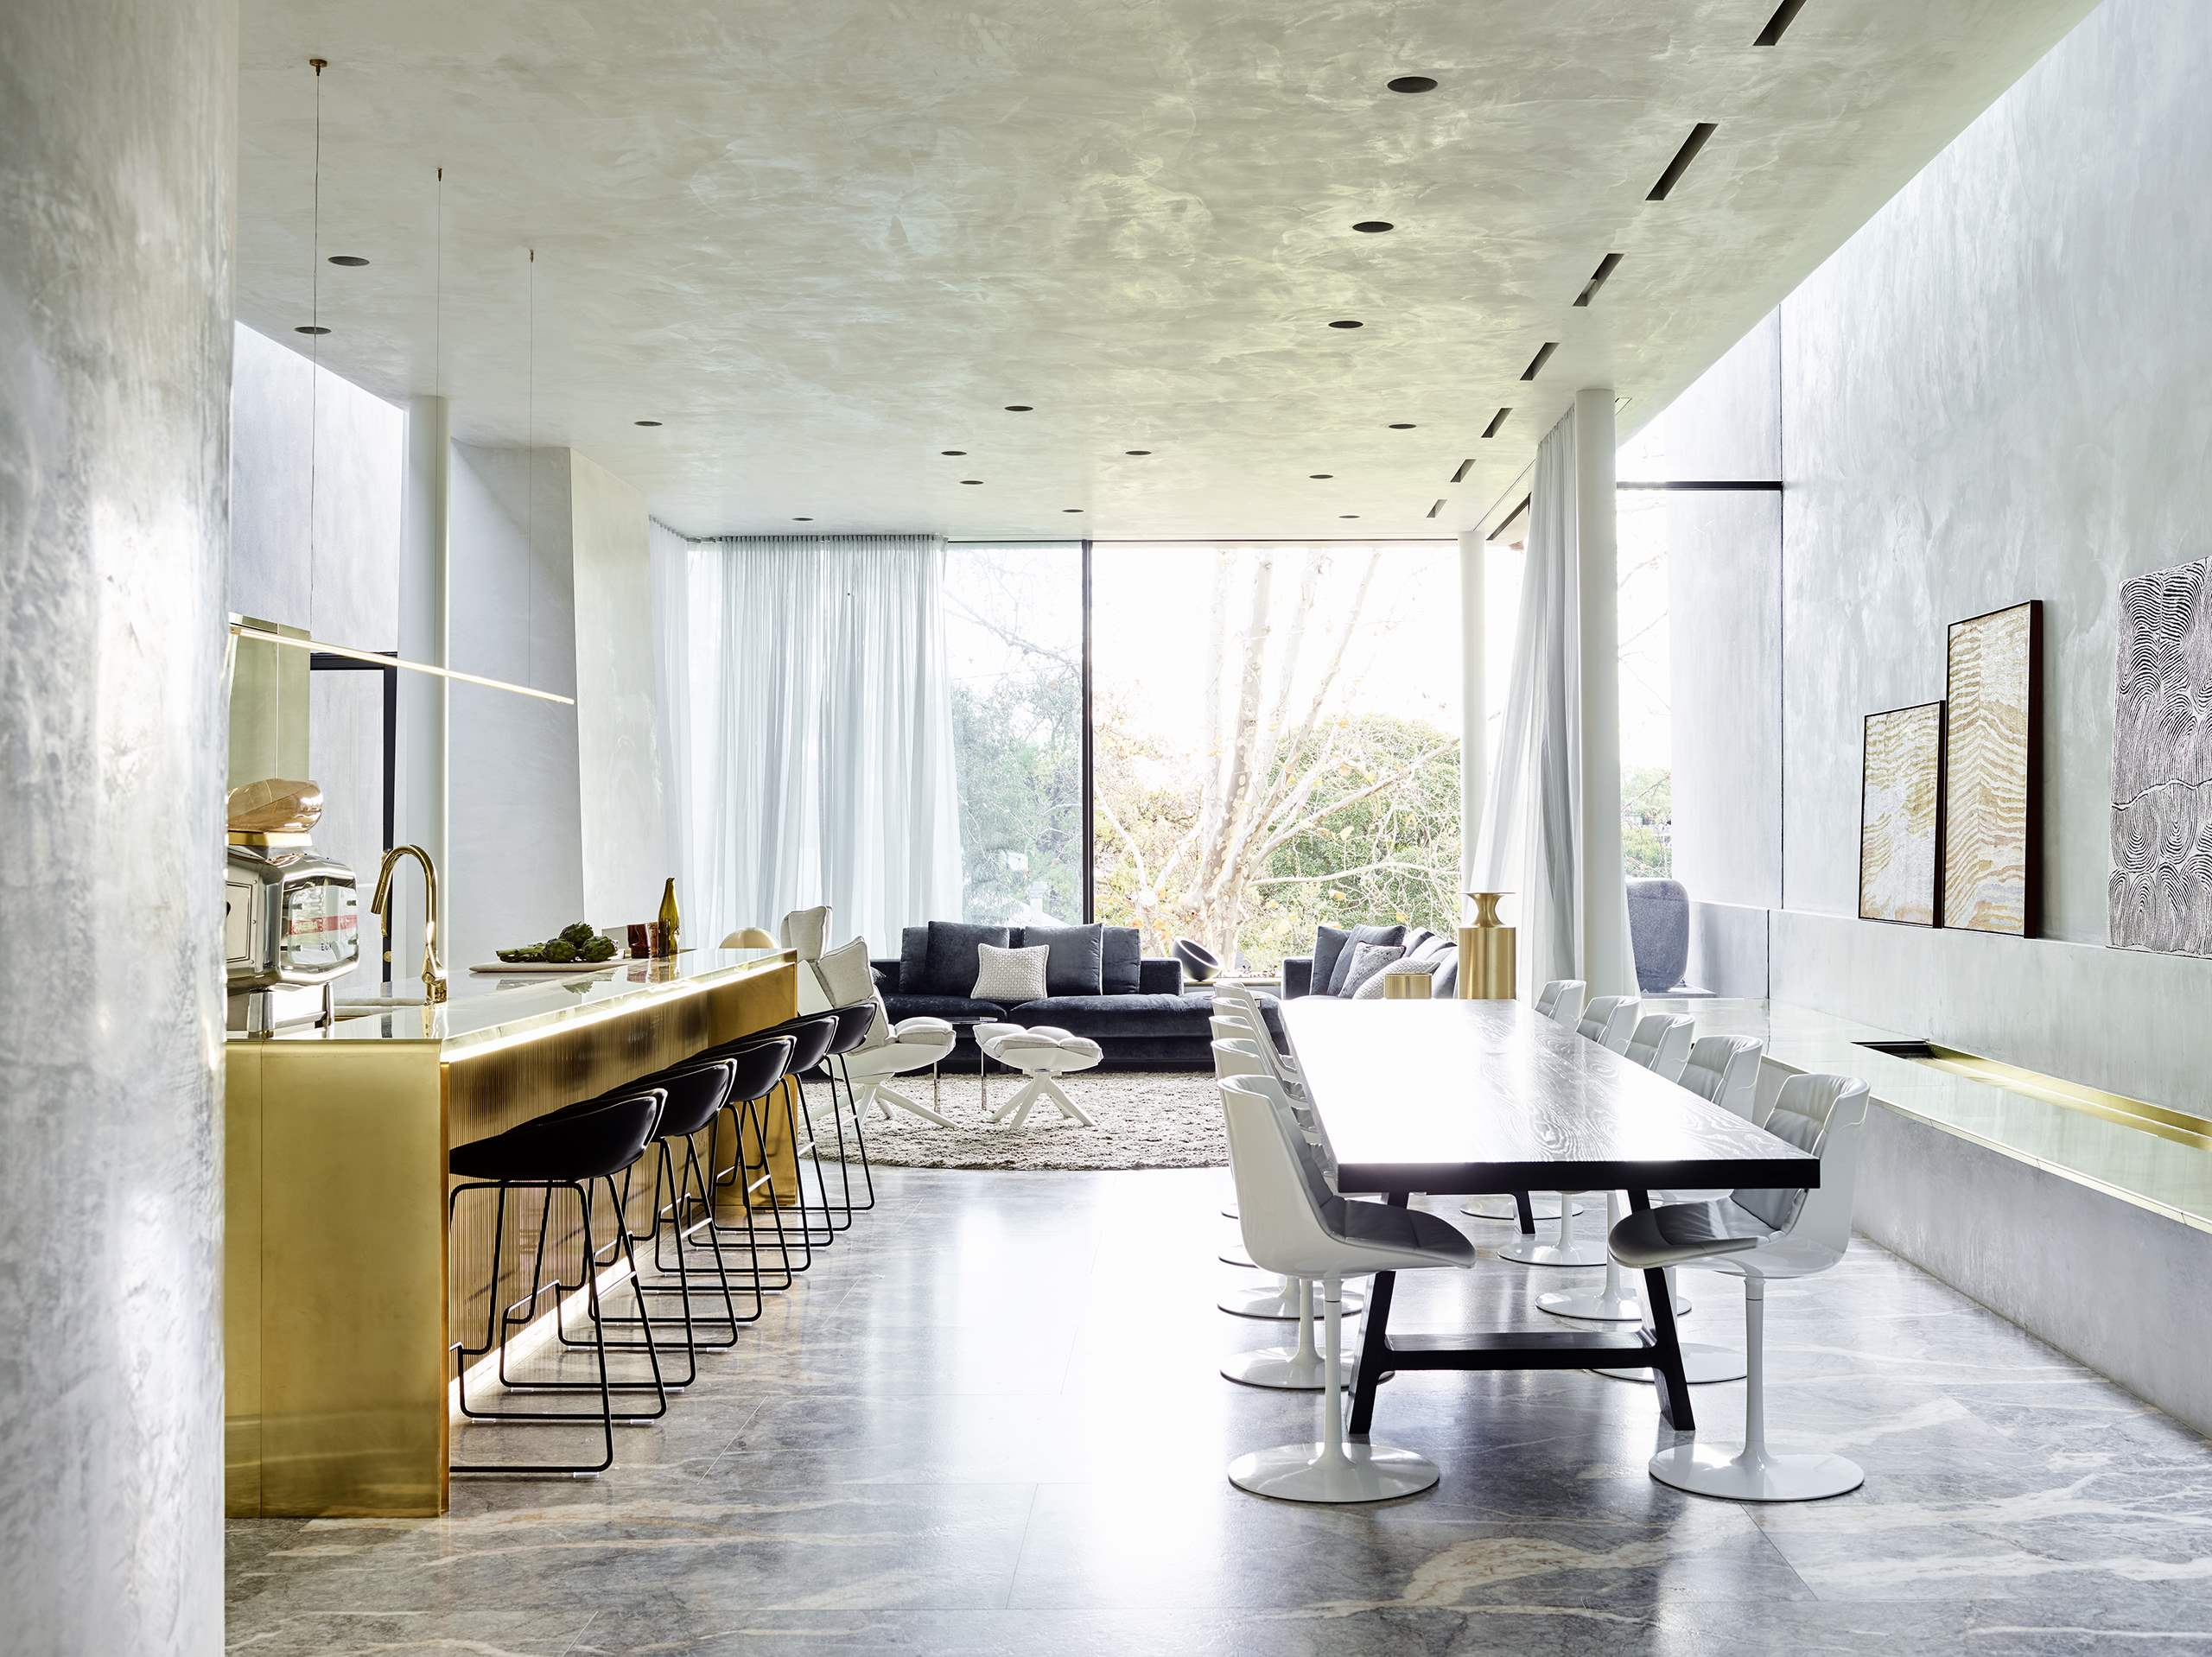 The dining and living rooms are united, there's much light thanks to glazed walls and gorgeous furniture